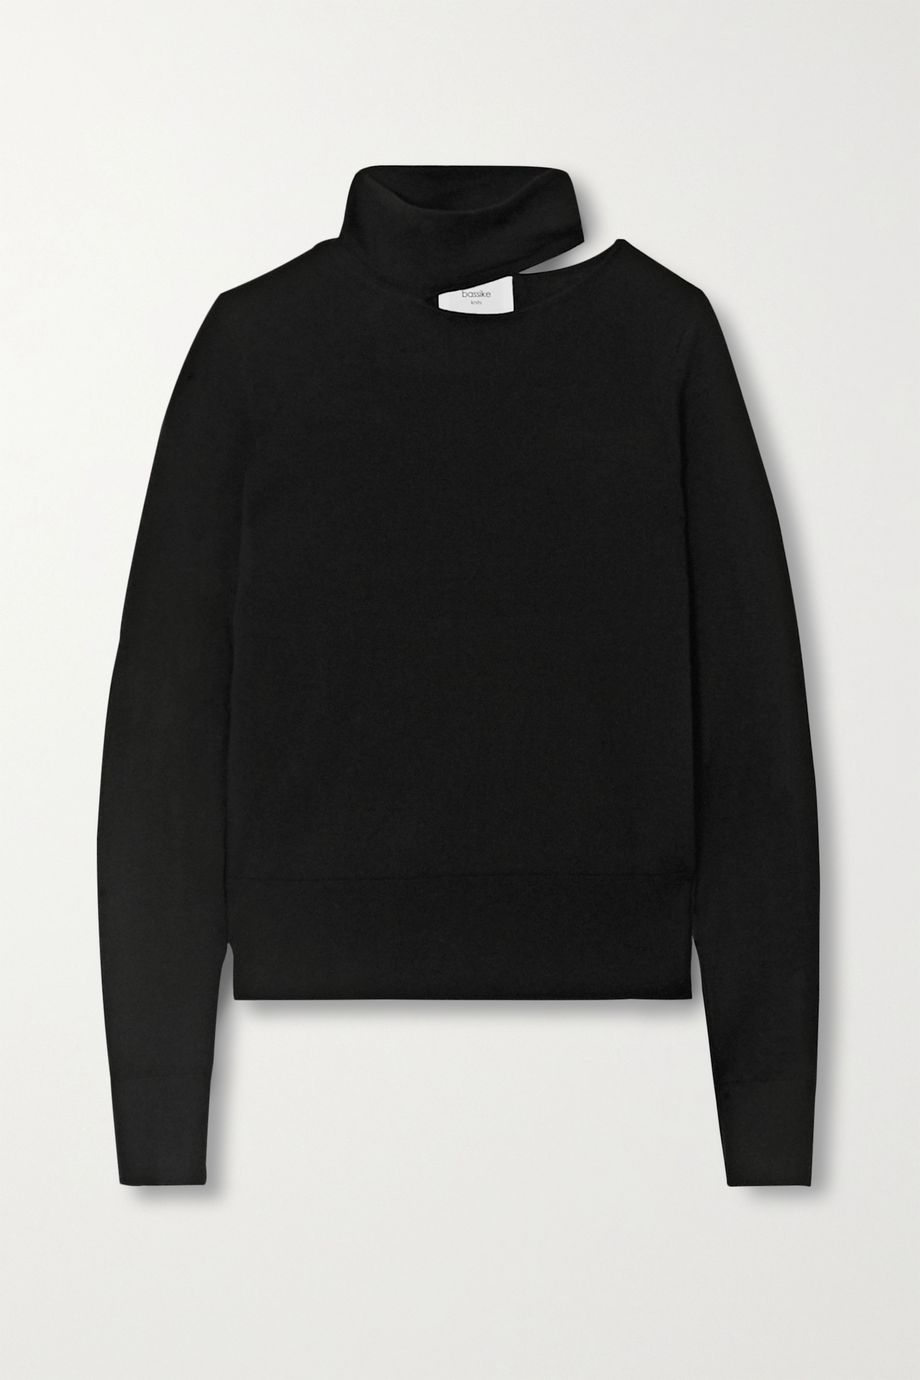 Bassike Cutout merino wool turtleneck top